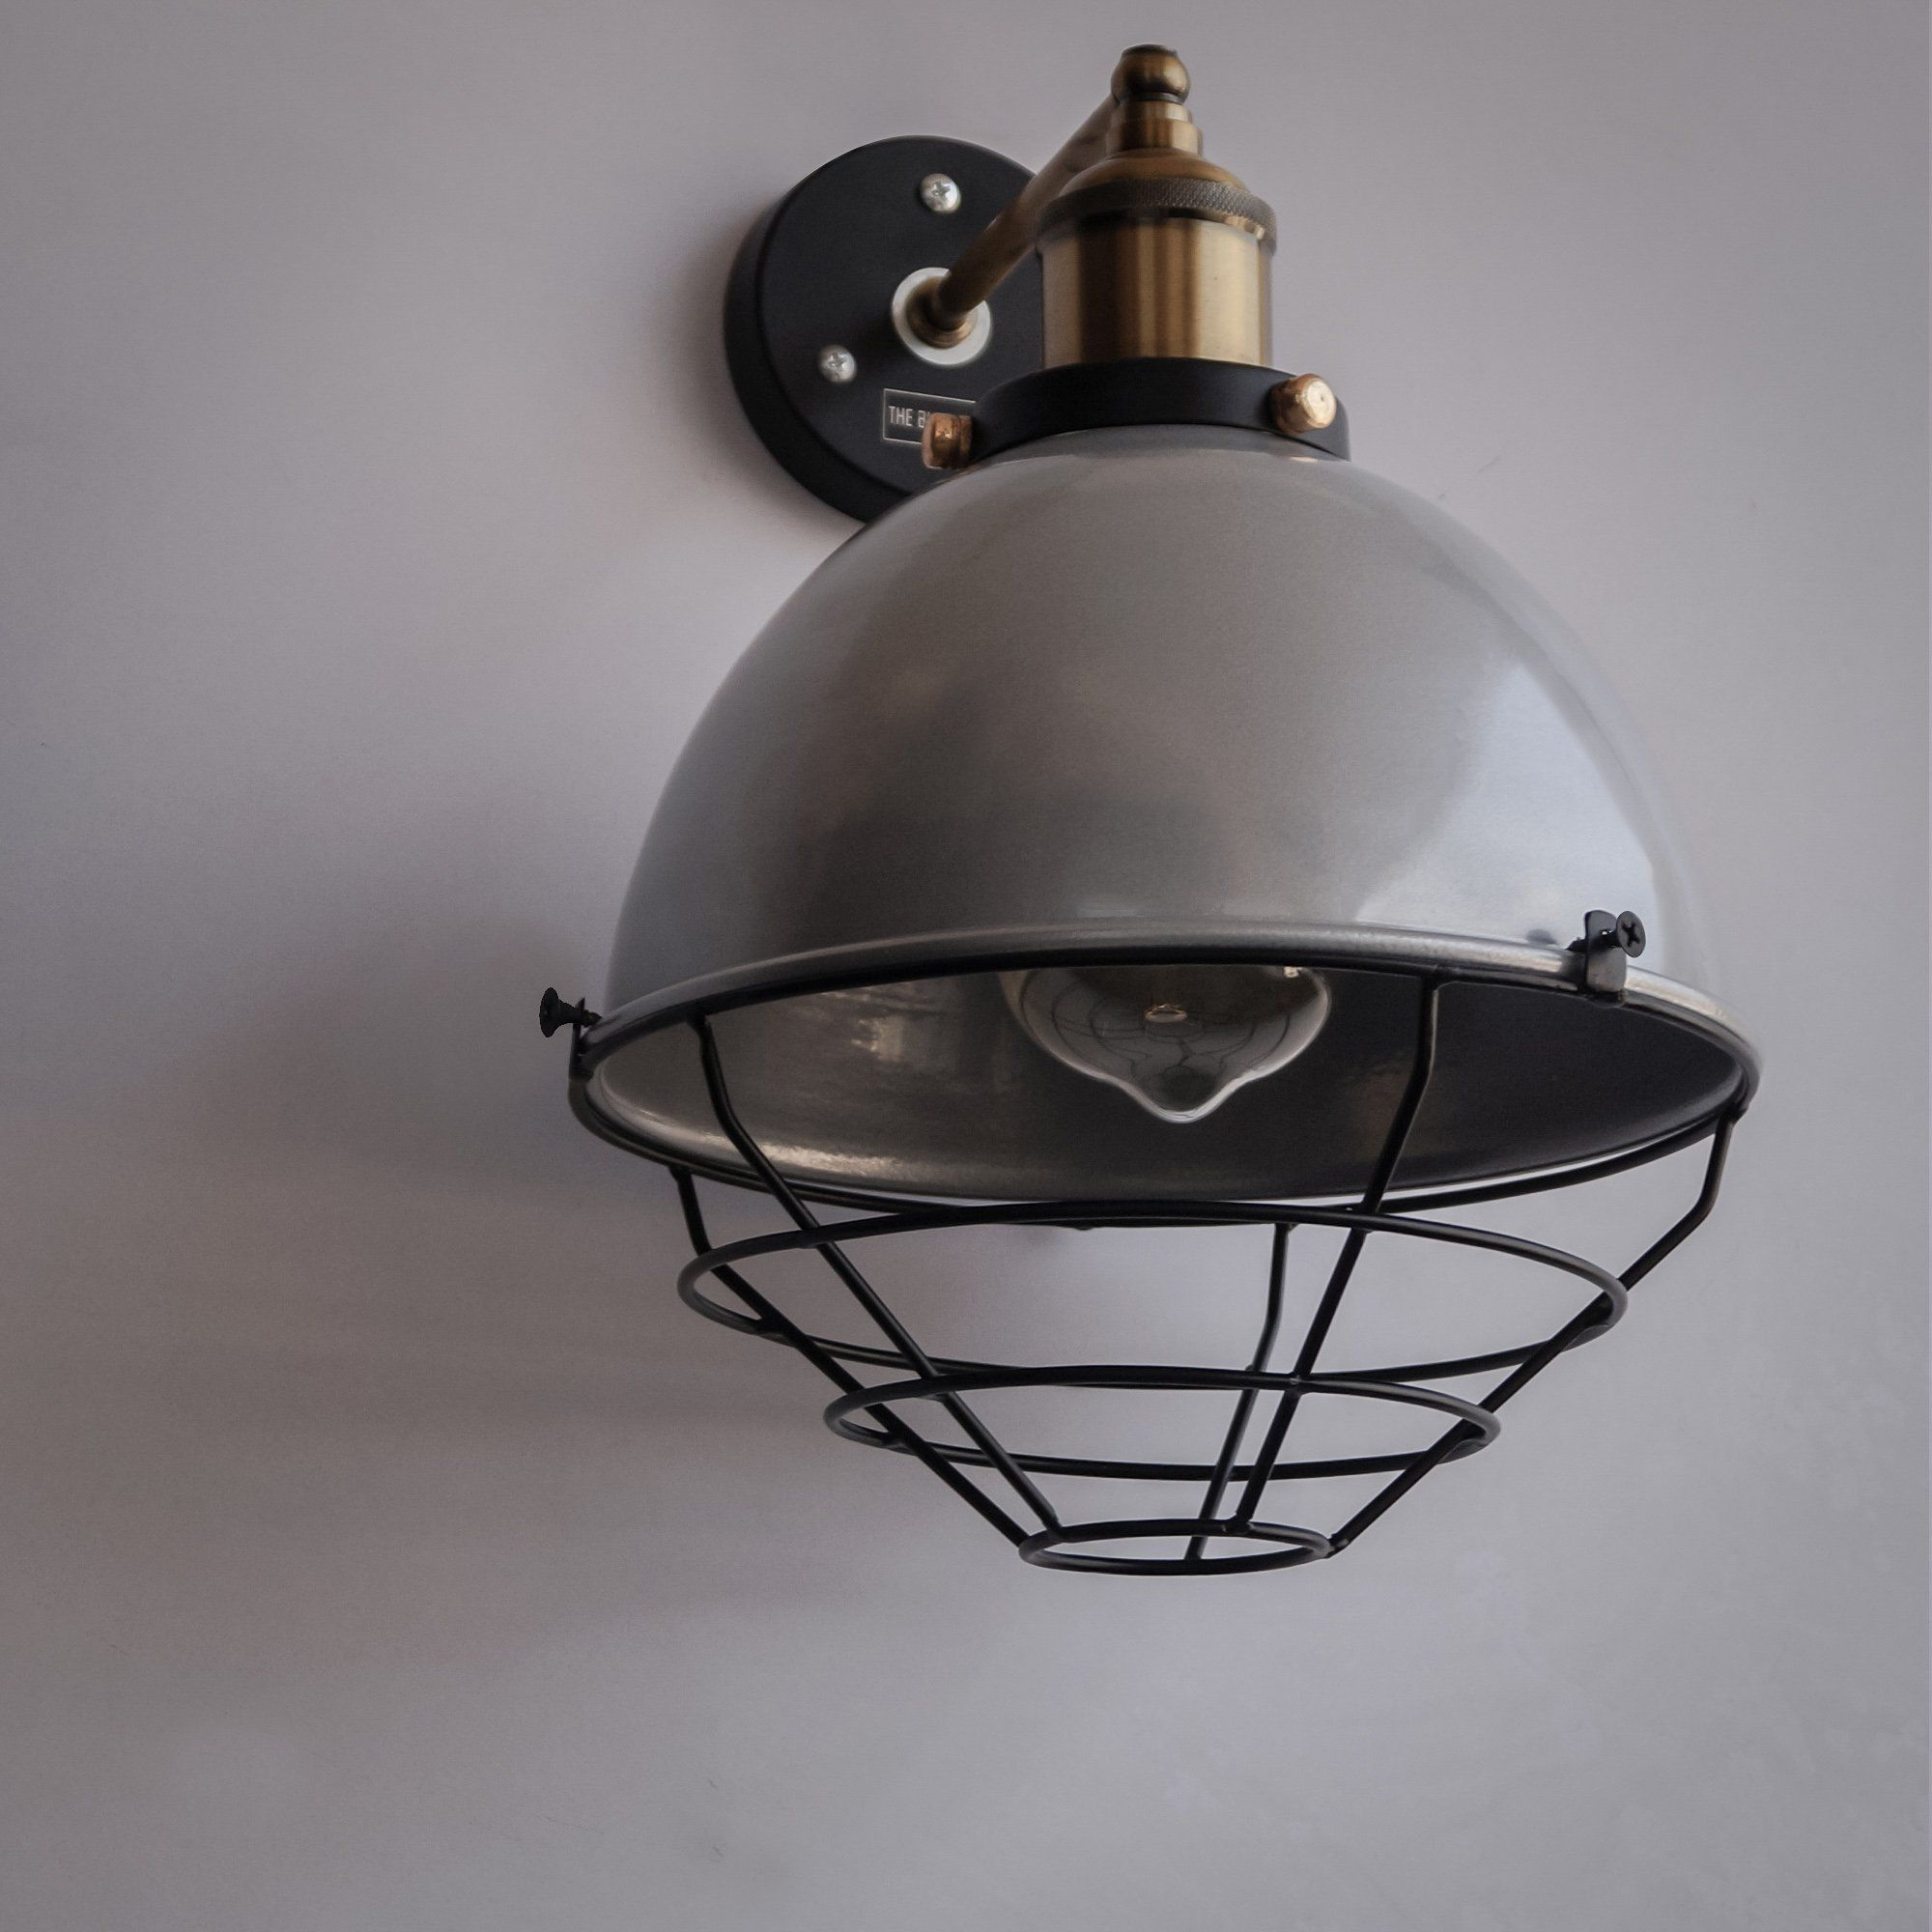 sconces light electric sconce esso white lighting shade porcelain industrial barn wheeler inch wall